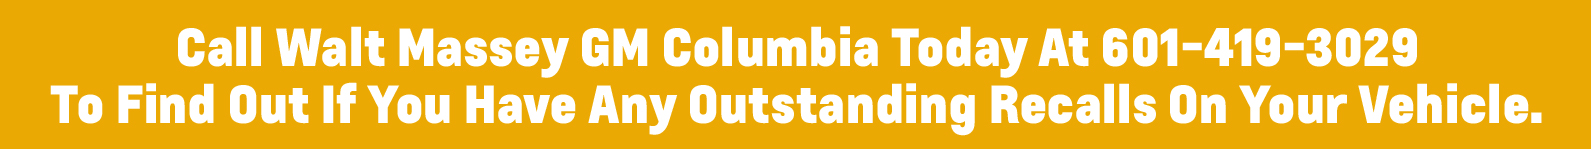 Call Walt Massey GM Columbia today at 601-419-3029 to find out if you have any outstanding recalls on your vehicle